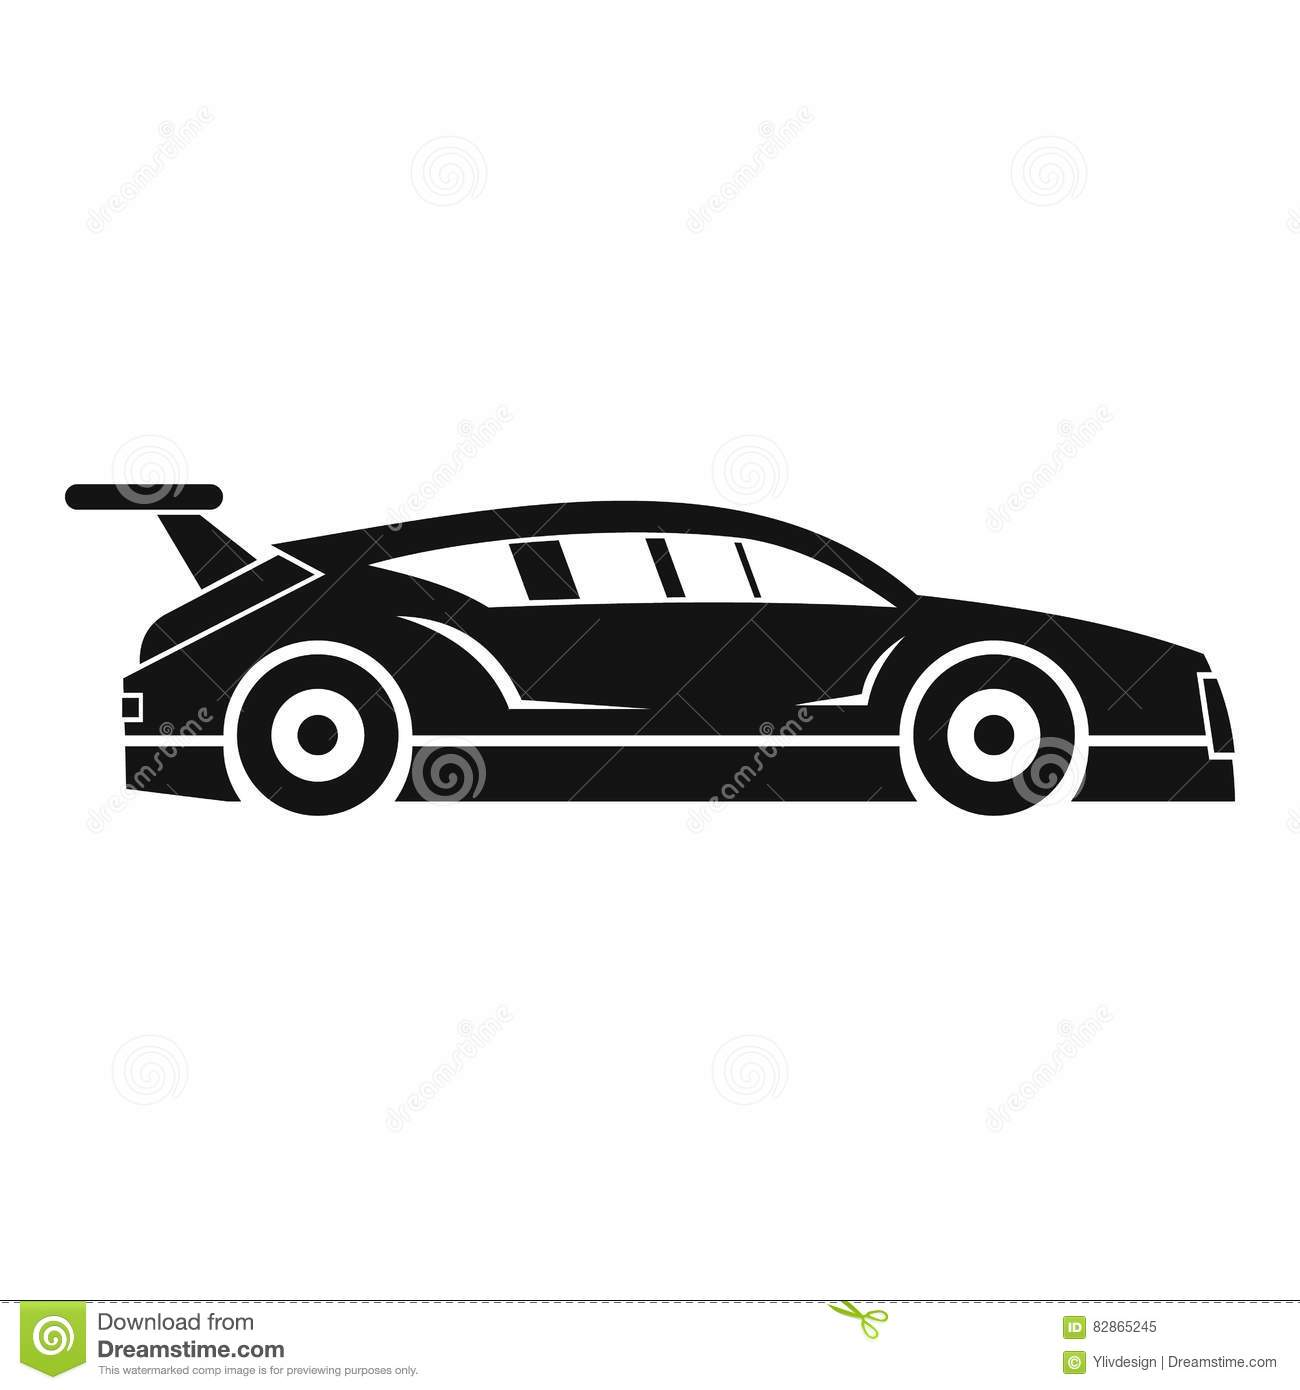 Icon Of A Fast Racing Car In Motion Cartoon Vector